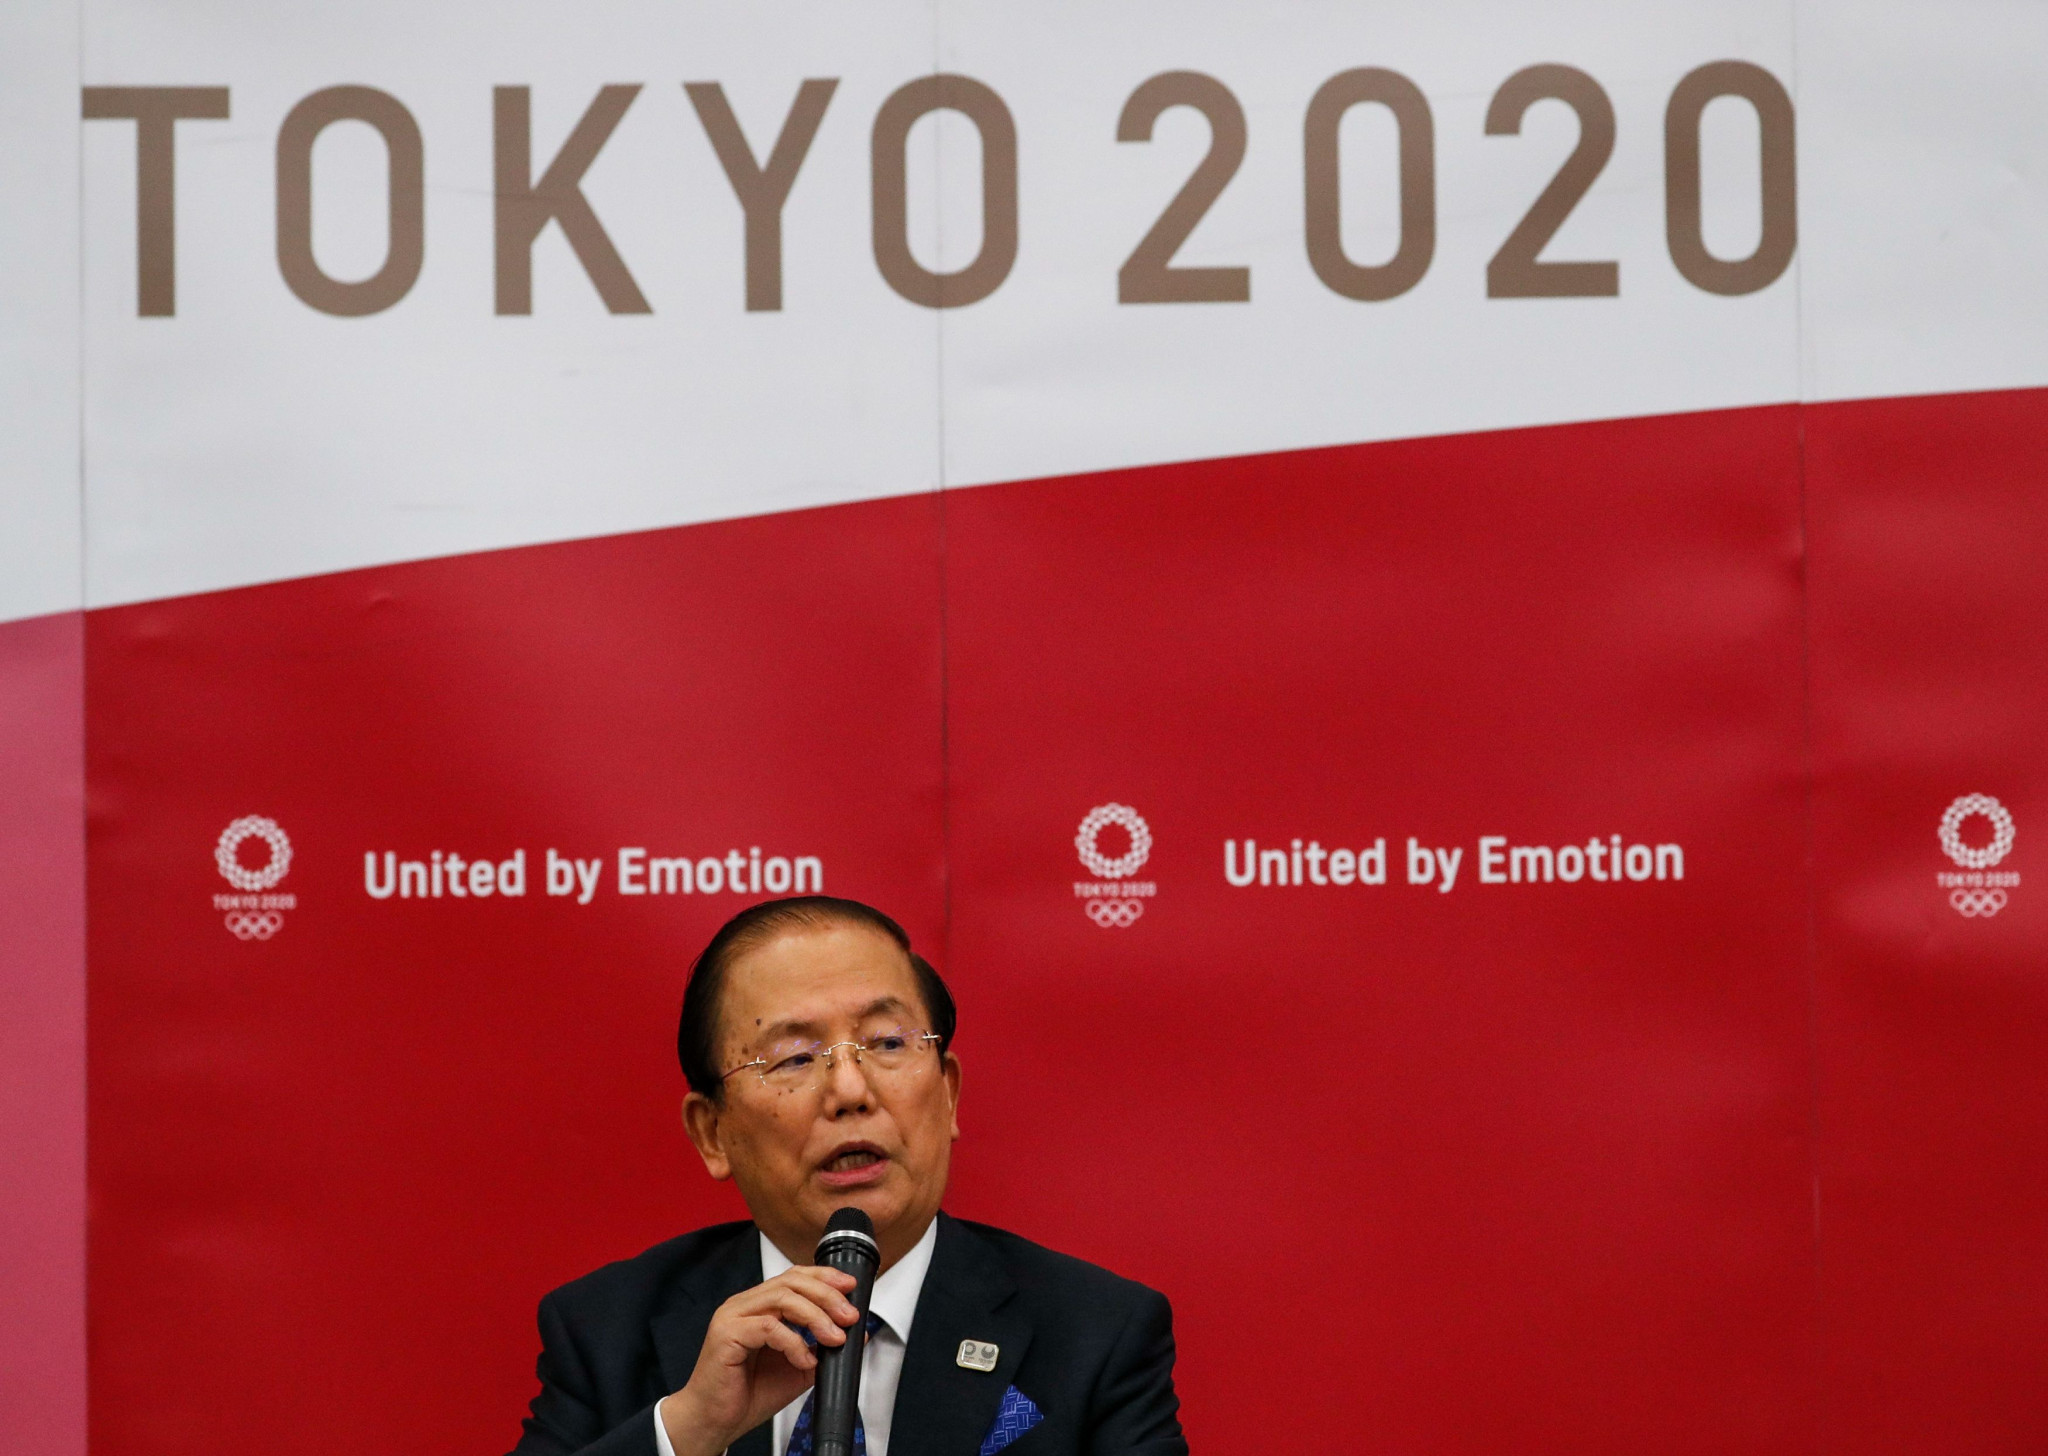 Tokyo 2020 chief executive Toshirō Mutō was among those present at the panel discussion ©Getty Images